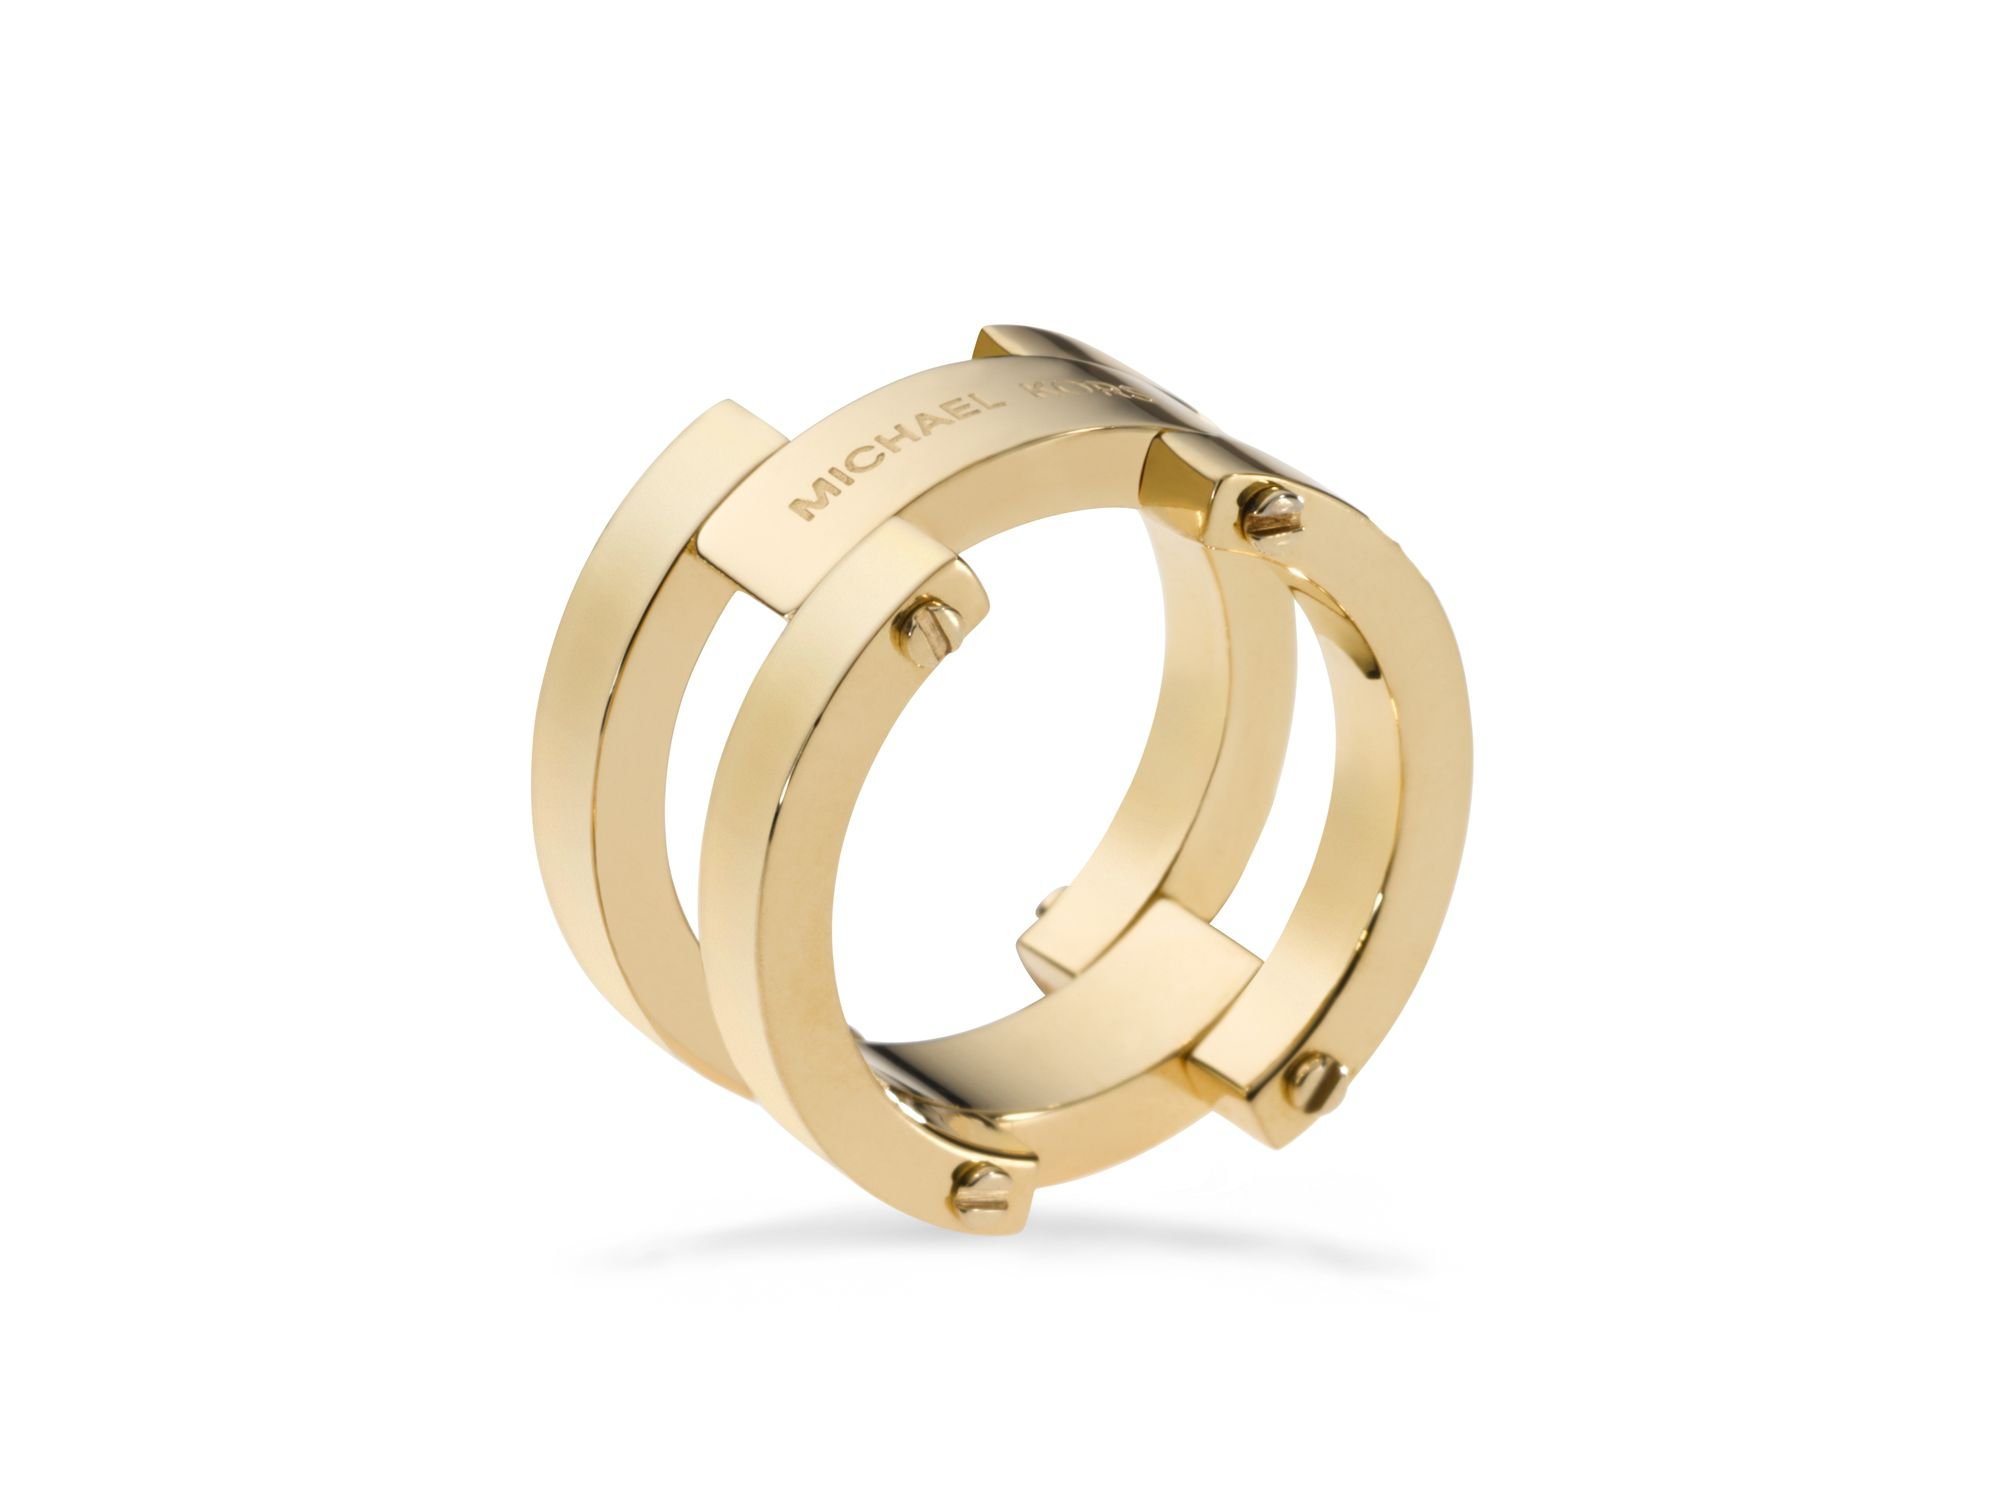 michael kors gold link ring in gold lyst